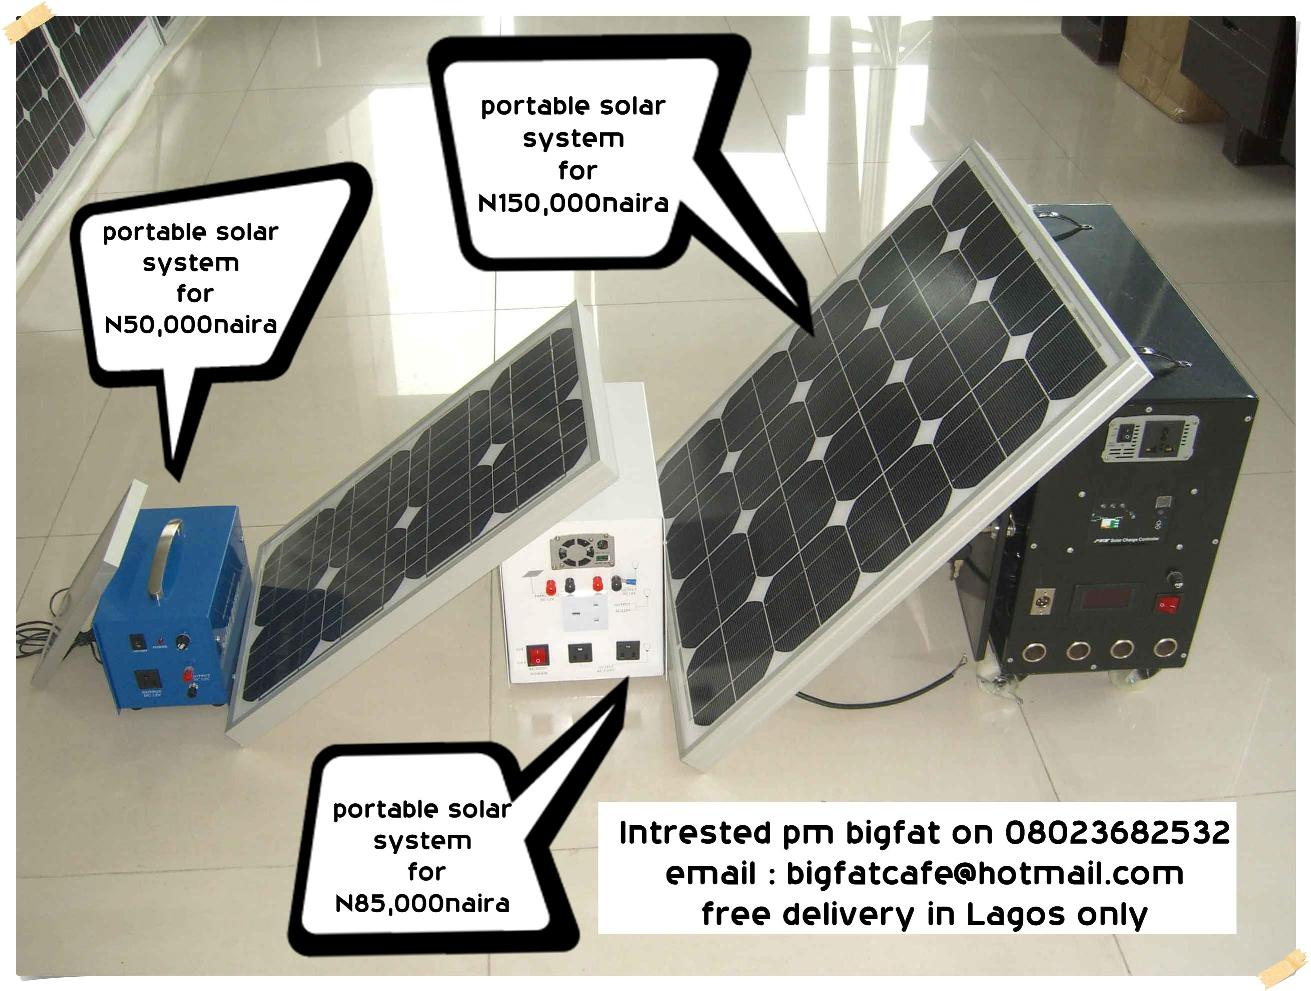 small solar power generator diagram wire data schema \u2022 solar heating diagram small solar power generator diagram images gallery